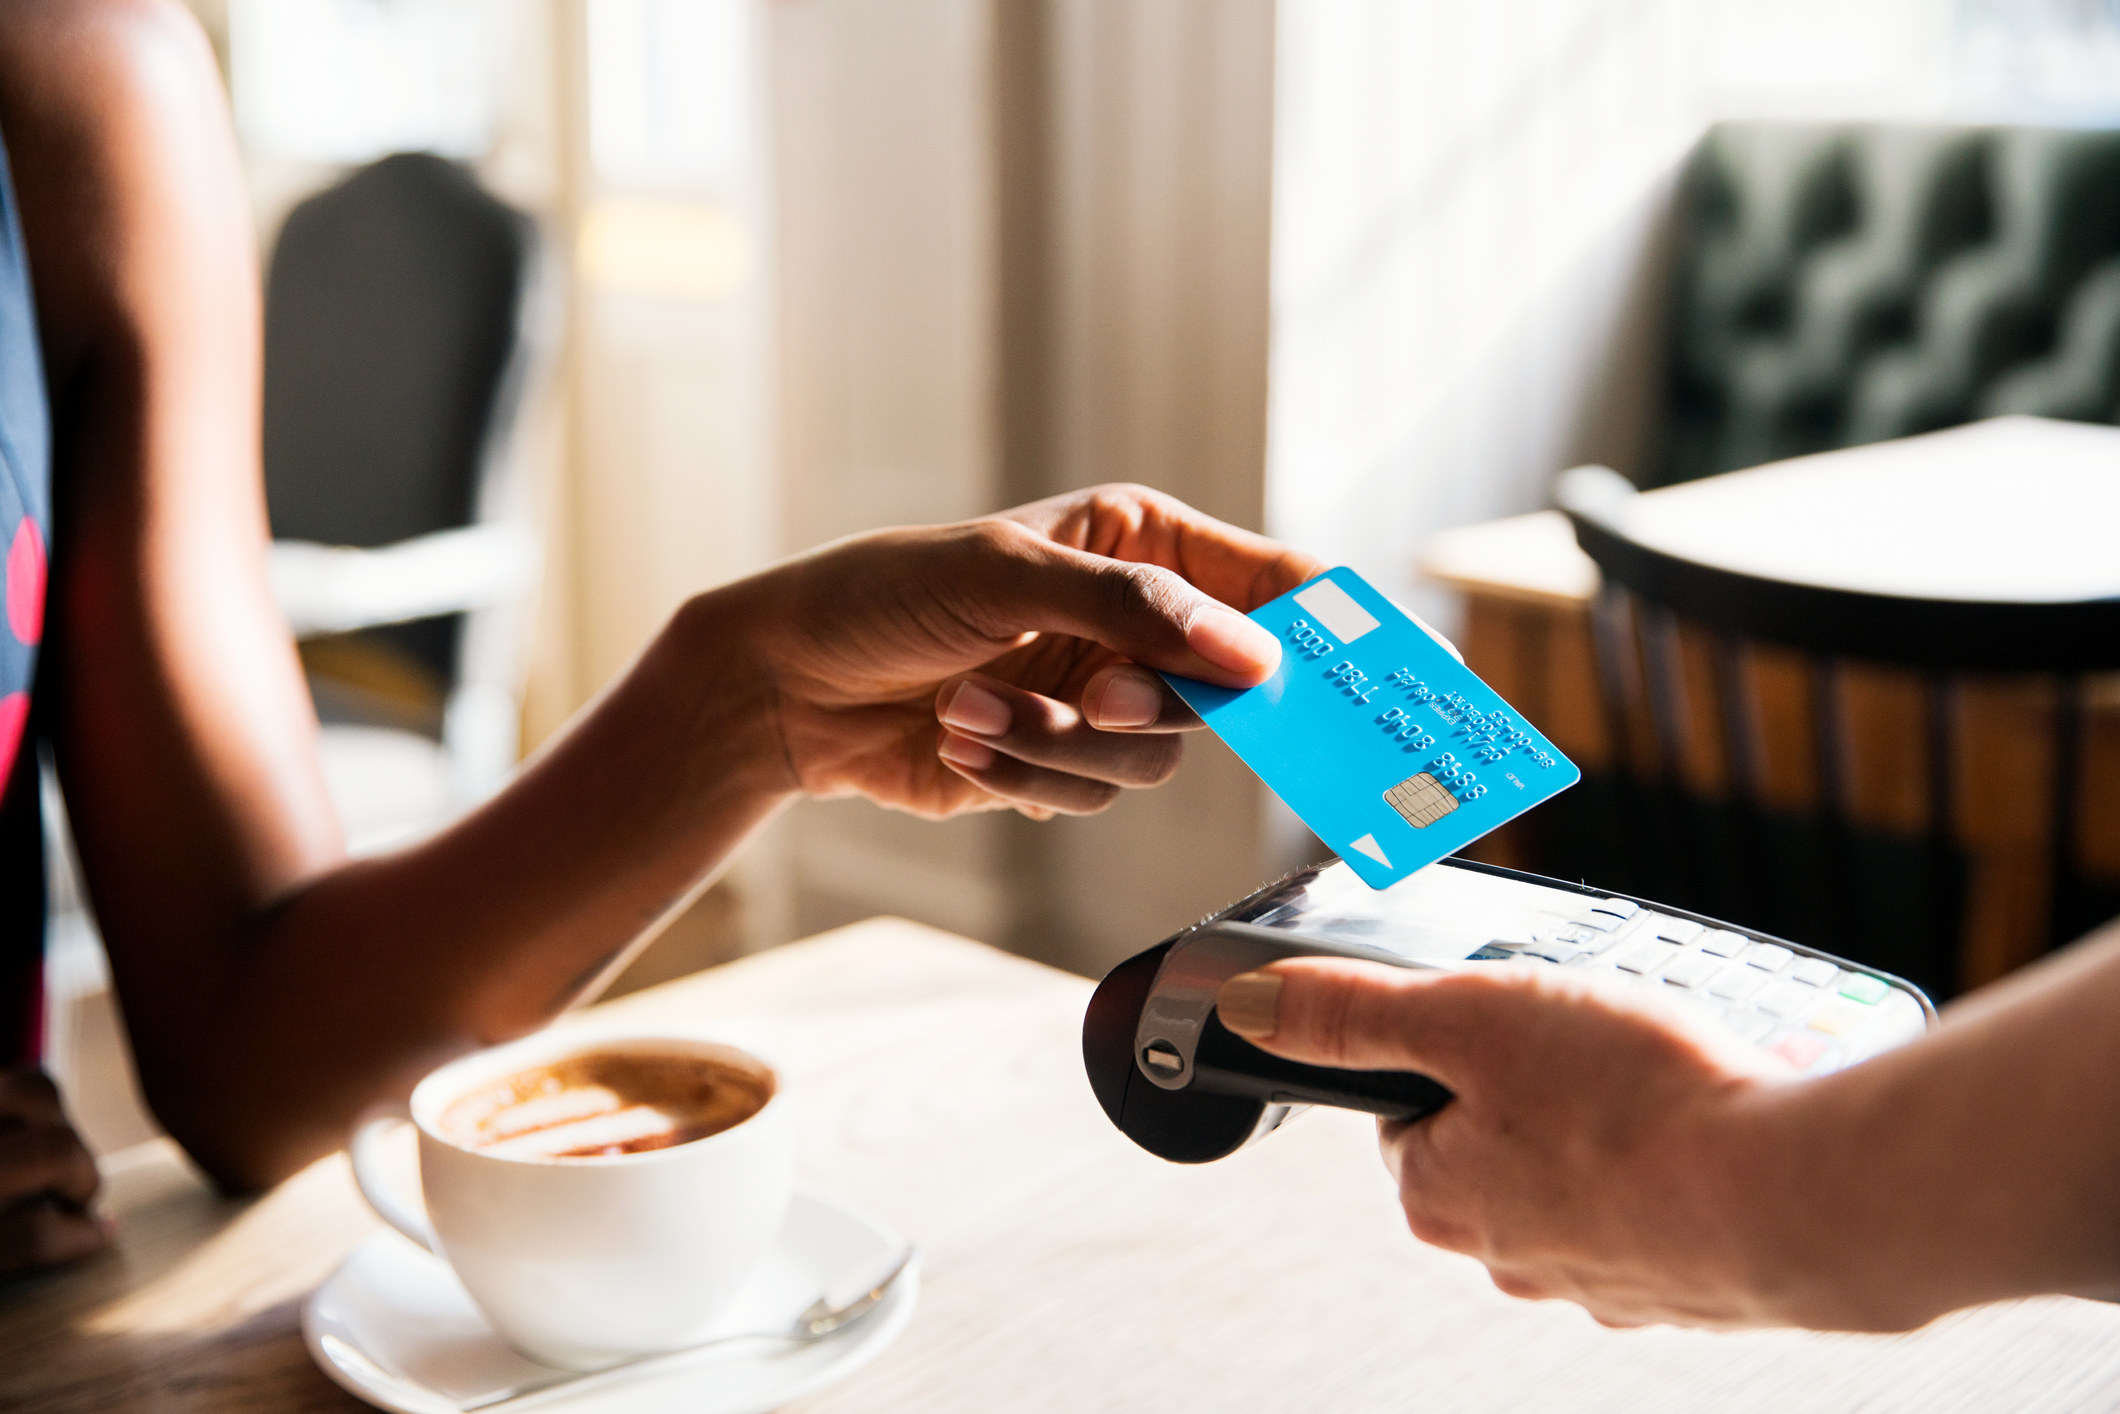 Model using a credit card to purchase coffee